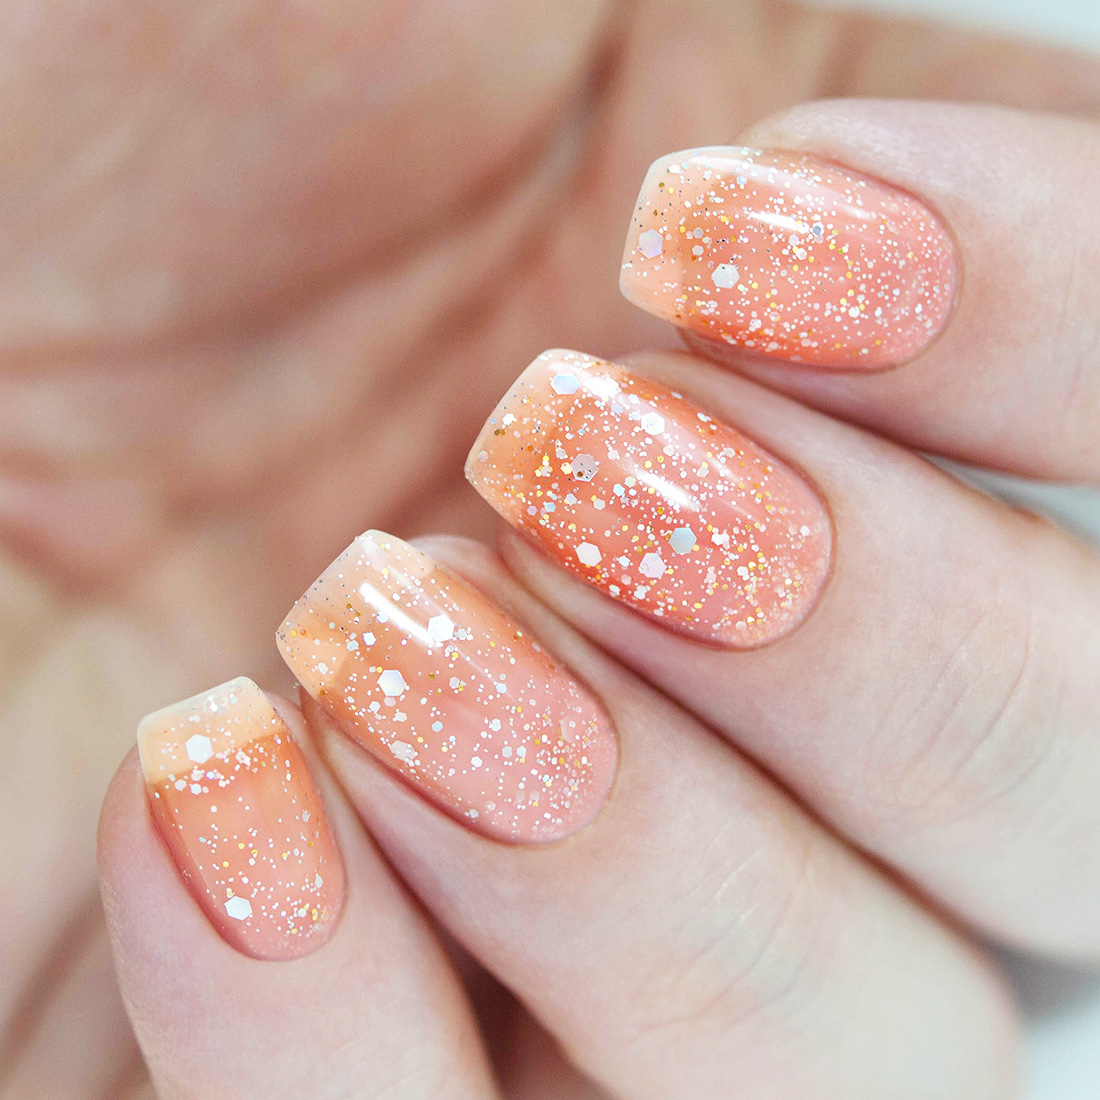 BMC Mix Size Hexagon Shaped Glitter Nail Lacquer Gel Polishes - Woodland Fantasy